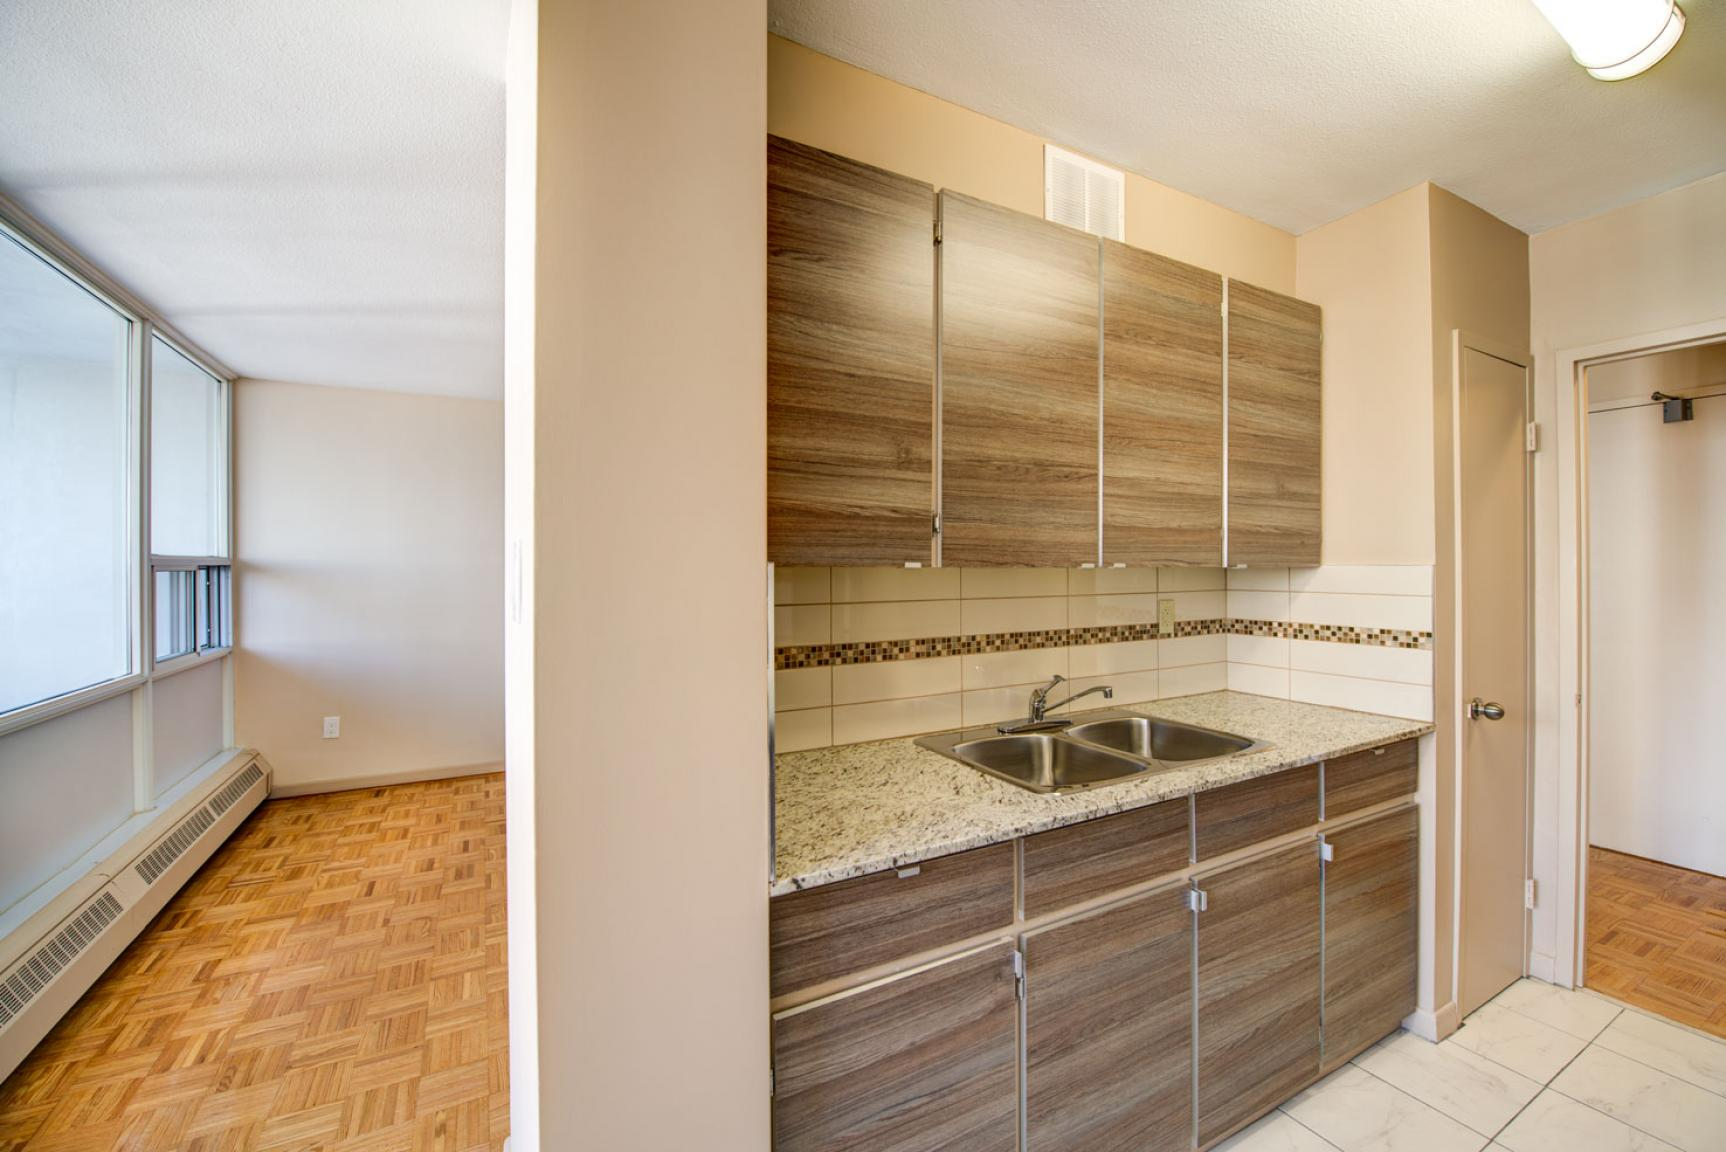 1 bedroom Apartments for rent in Toronto at Dunfield Tower - Photo 14 - RentersPages – L138879